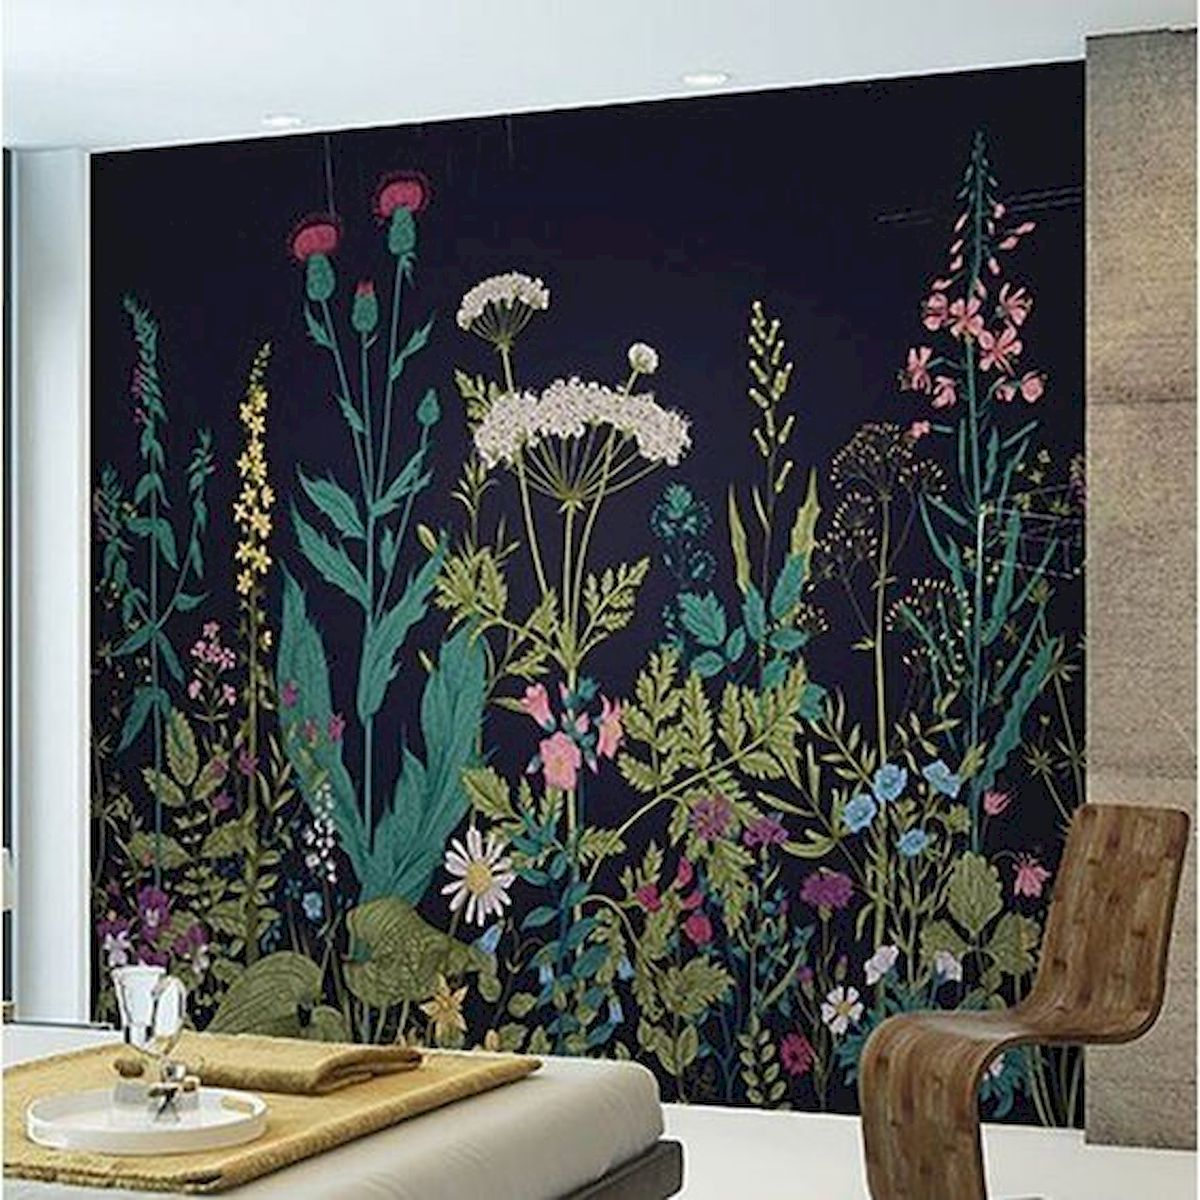 44 Easy but Awesome DIY Wall Painting Ideas to Decorate Your Home (26)